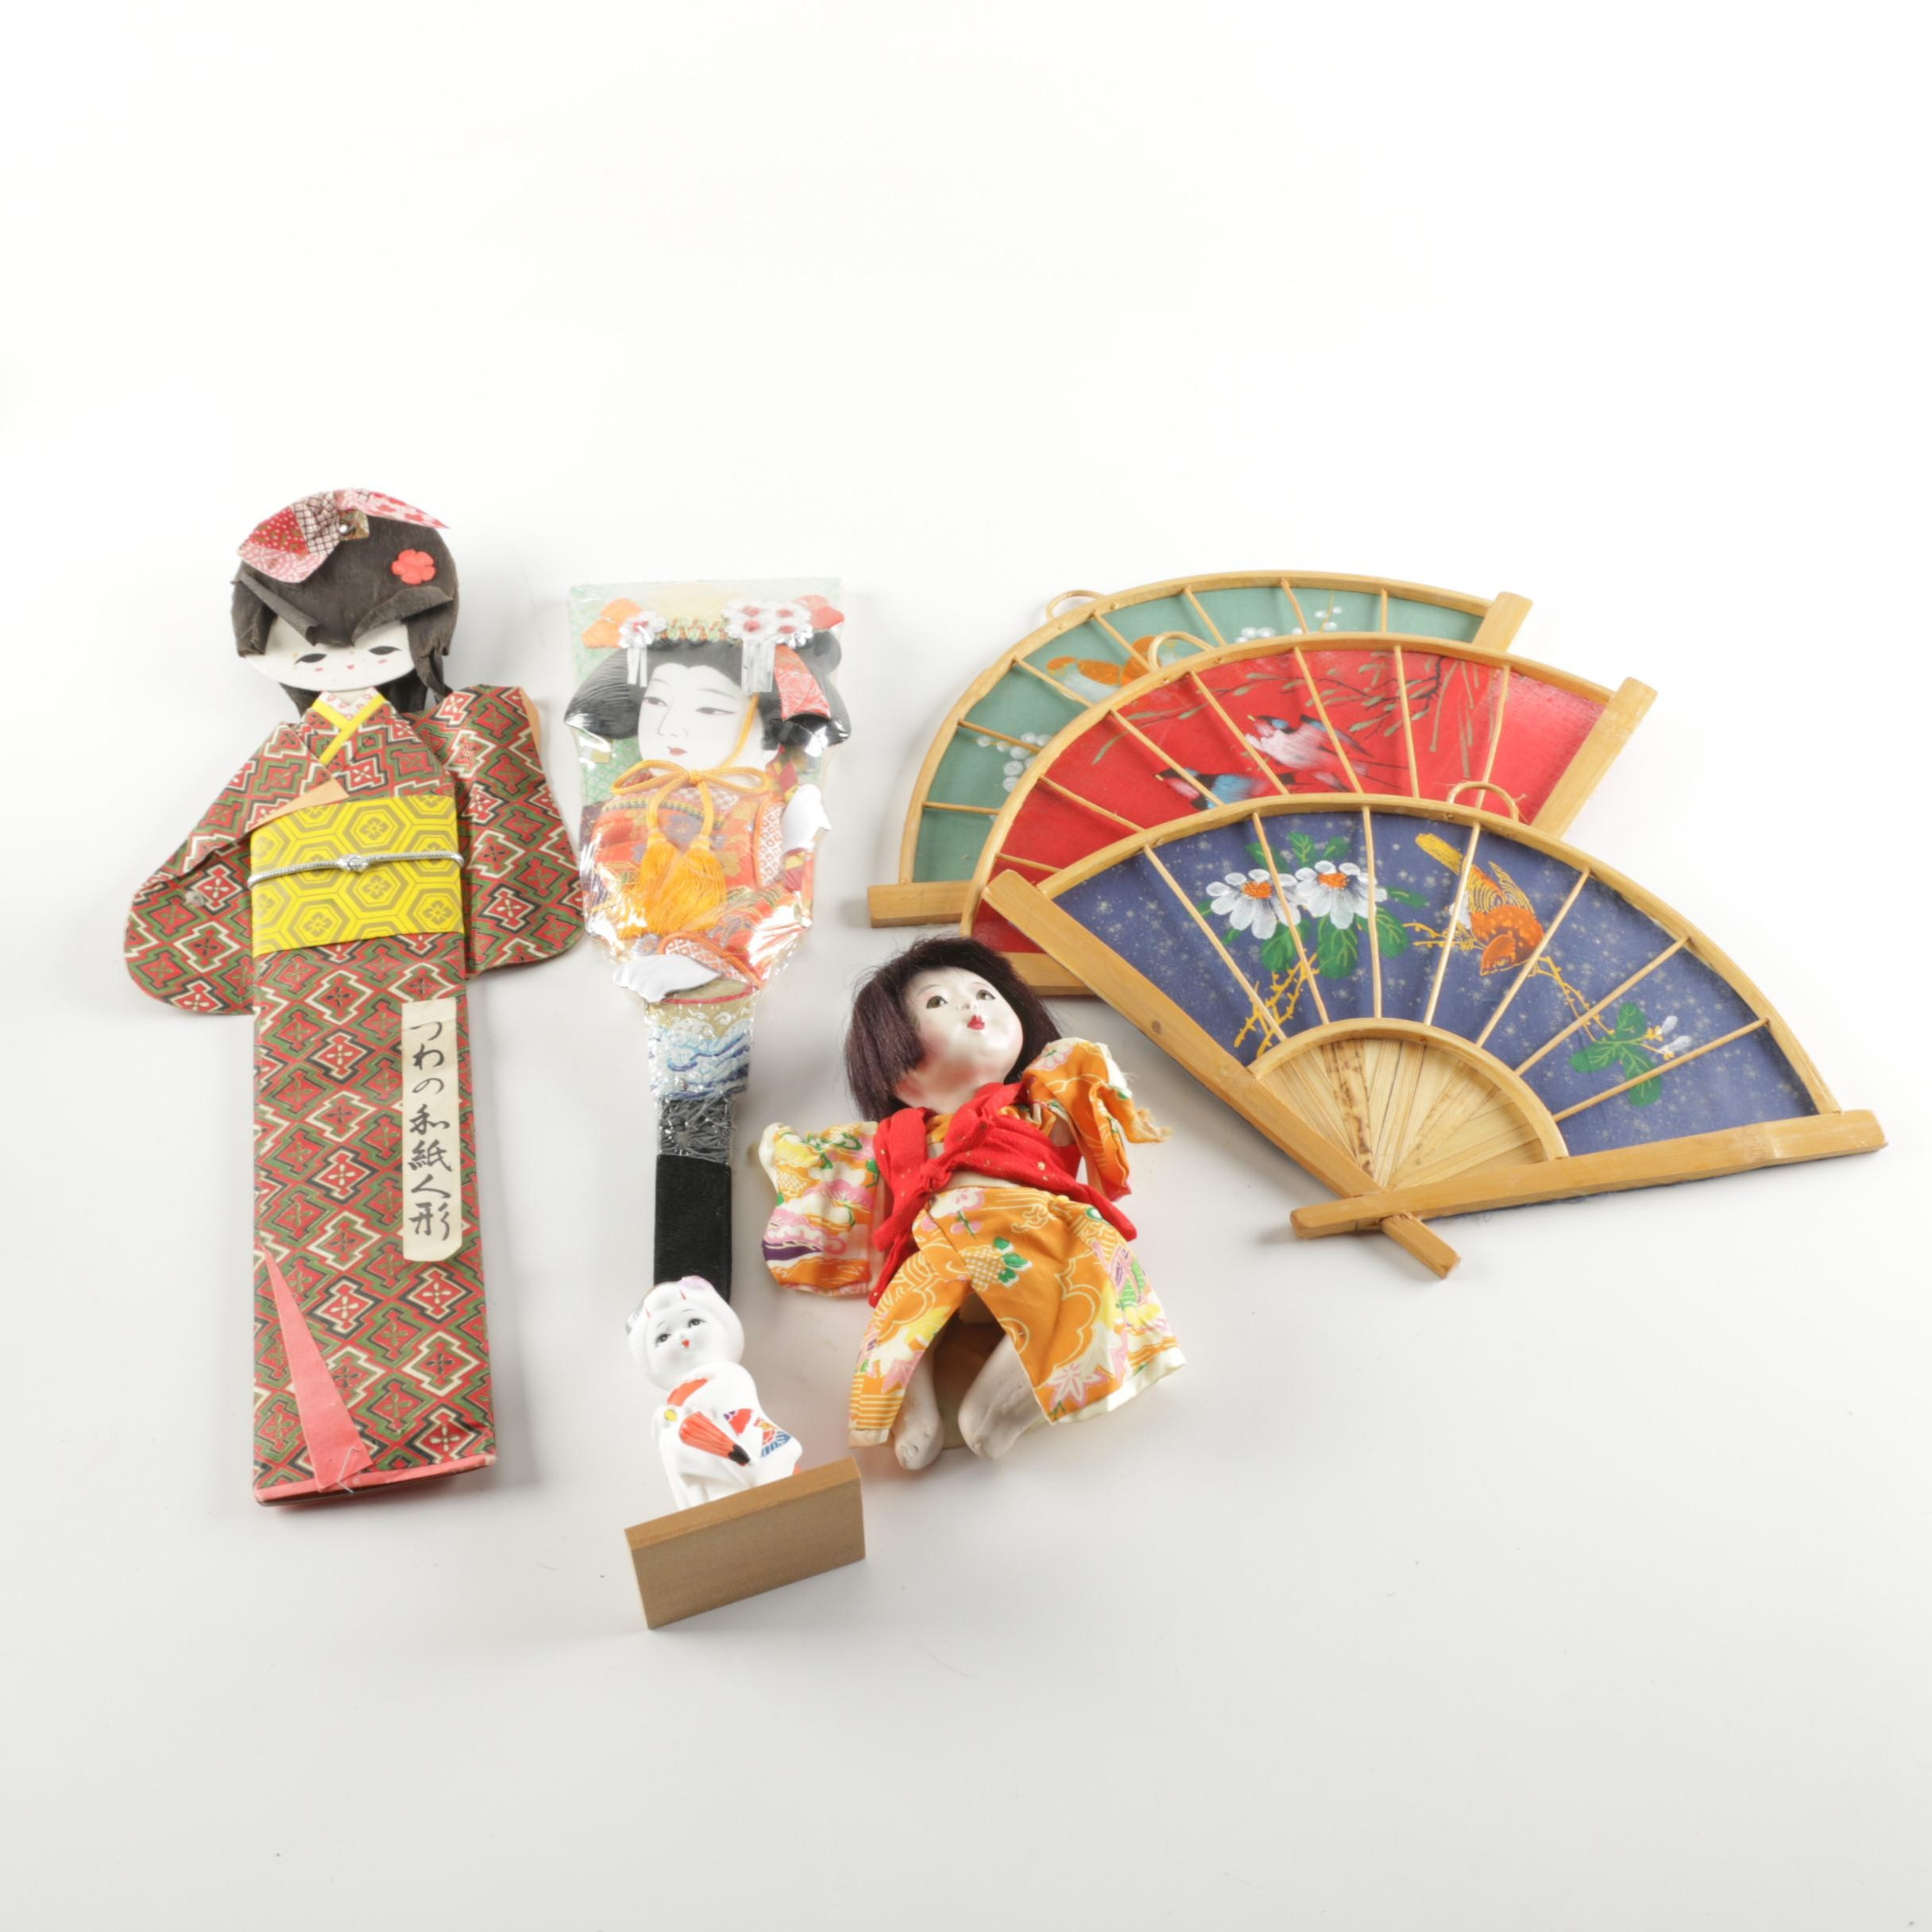 Japanese Figurines and Hand-Painted Fan Wall Hangings